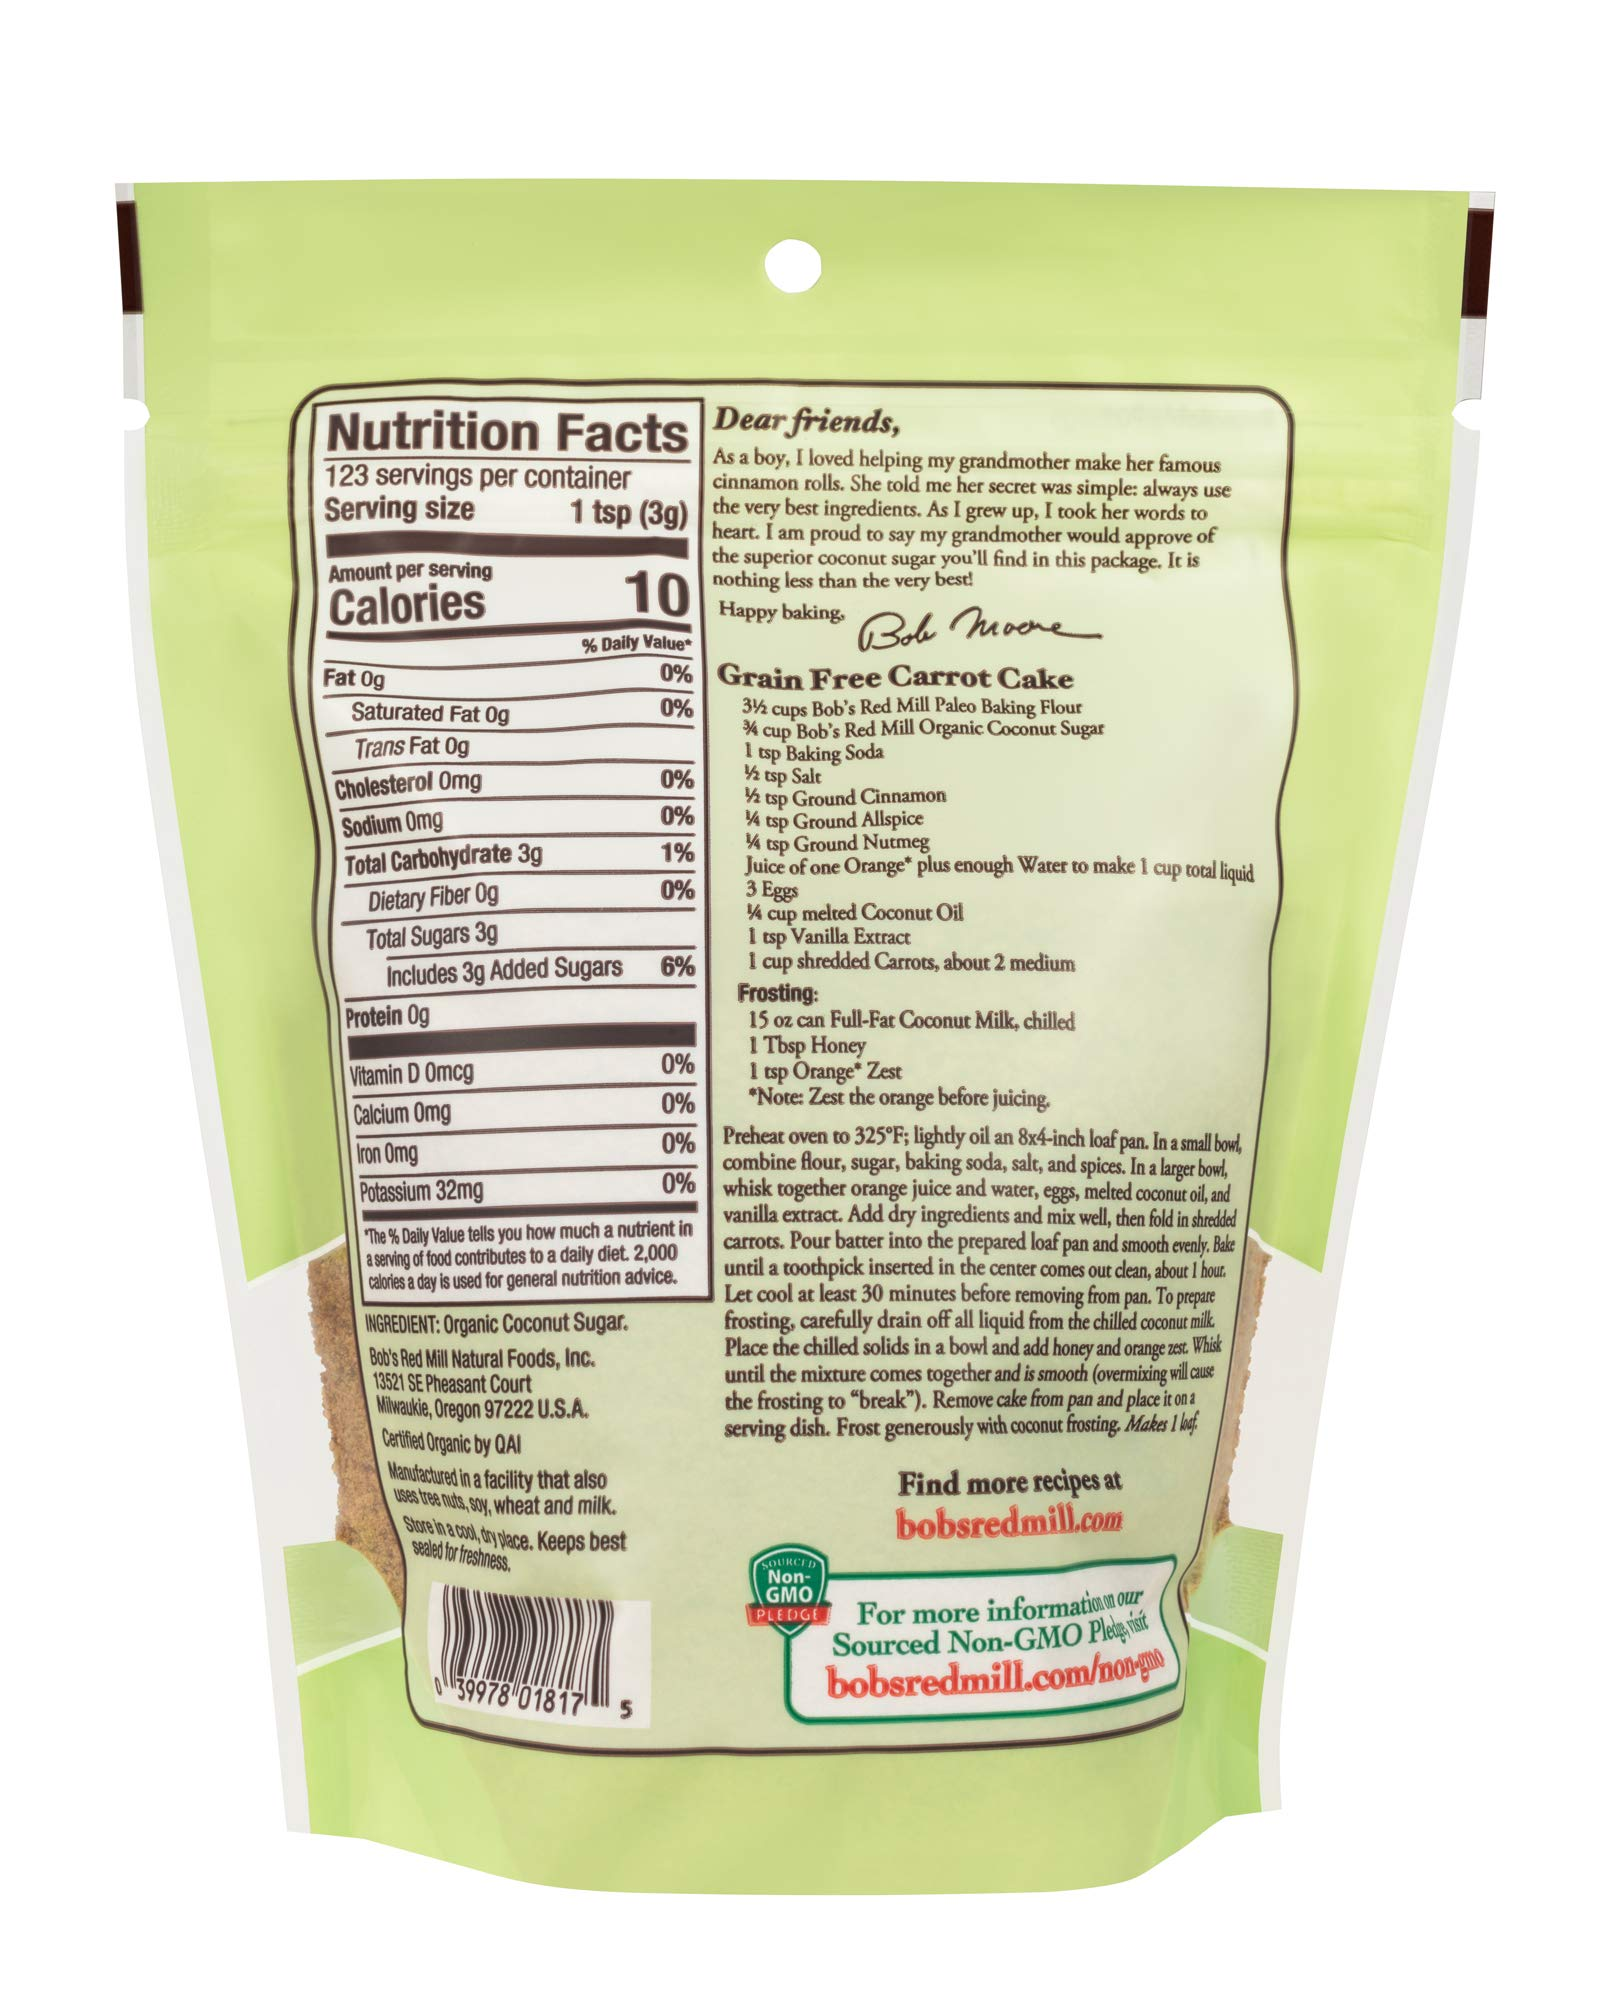 Bob's Red Mill Resealable Organic Coconut Sugar, 13 Oz (6 Pack) by Bob's Red Mill (Image #4)